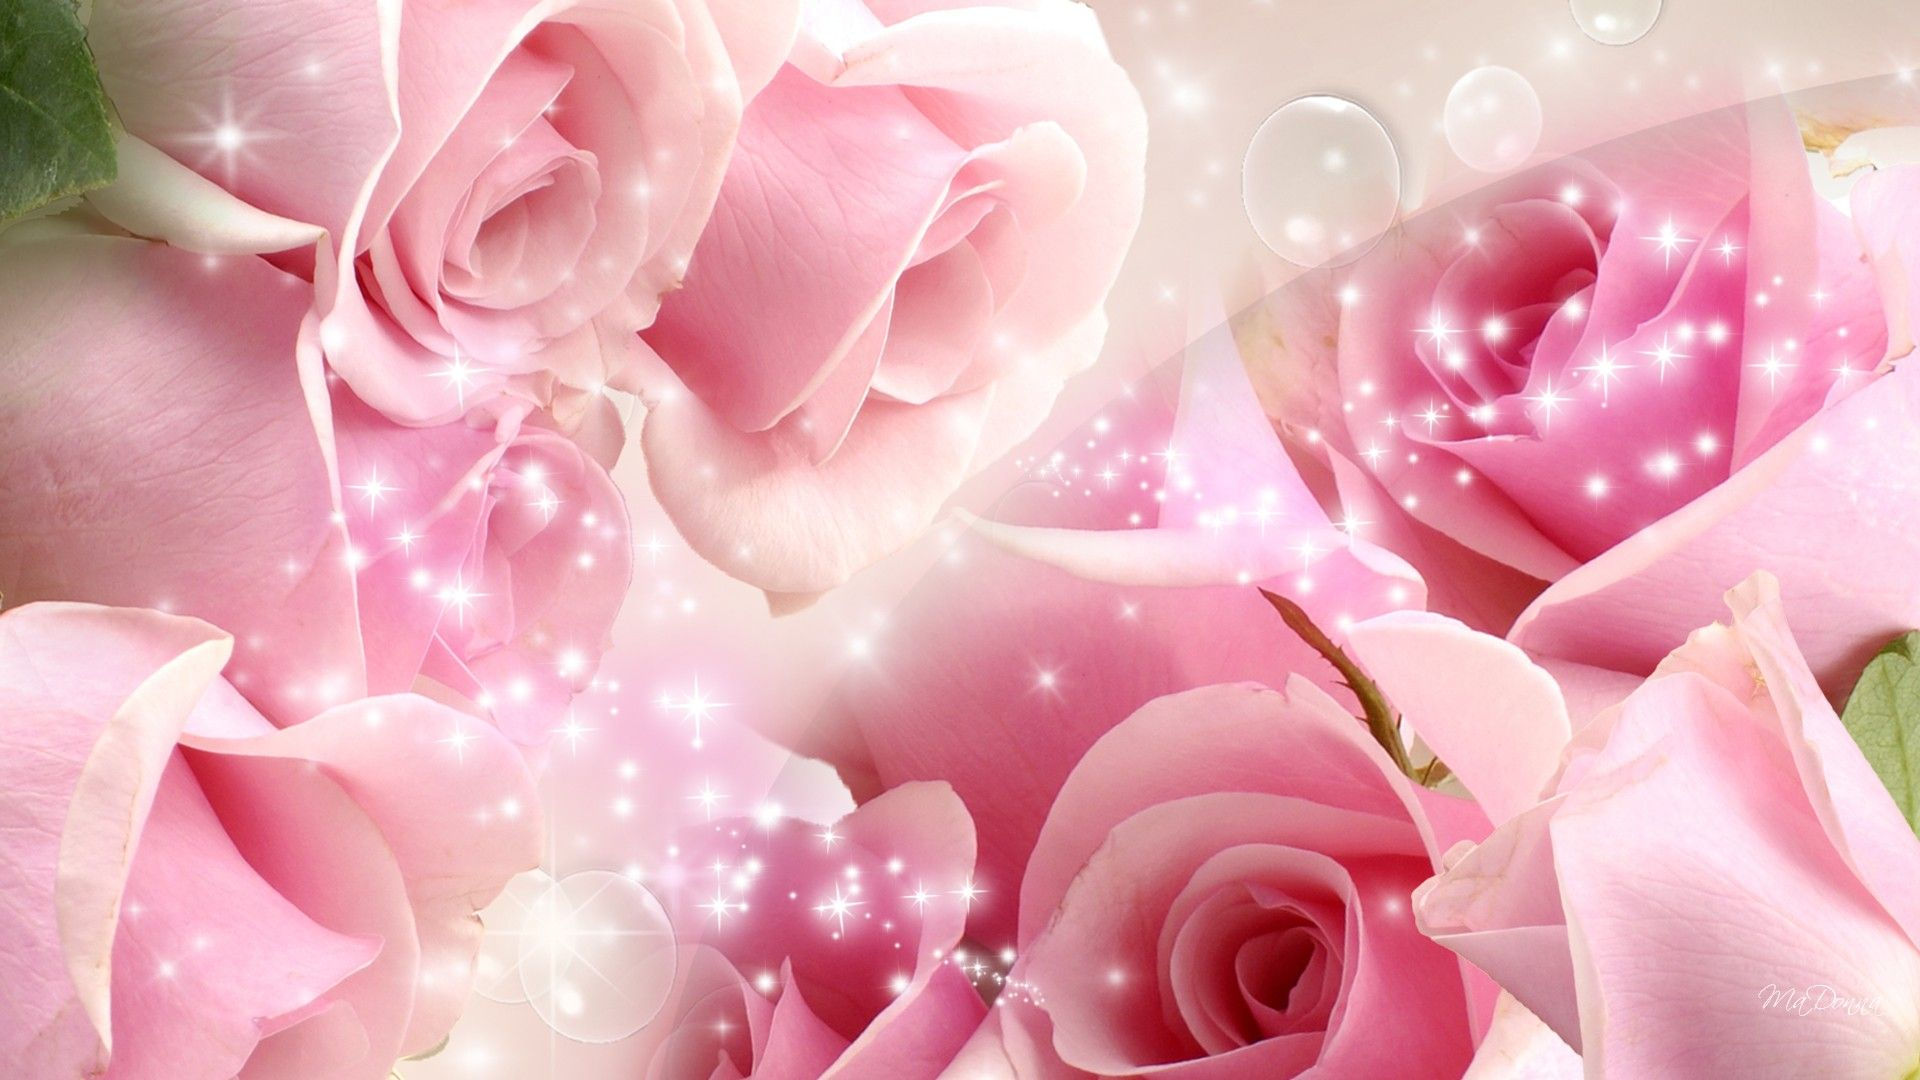 Roses So Pink 104521 Jpg 1920 1080 Beautiful Pink Roses Flower Wallpaper Rose Wallpaper